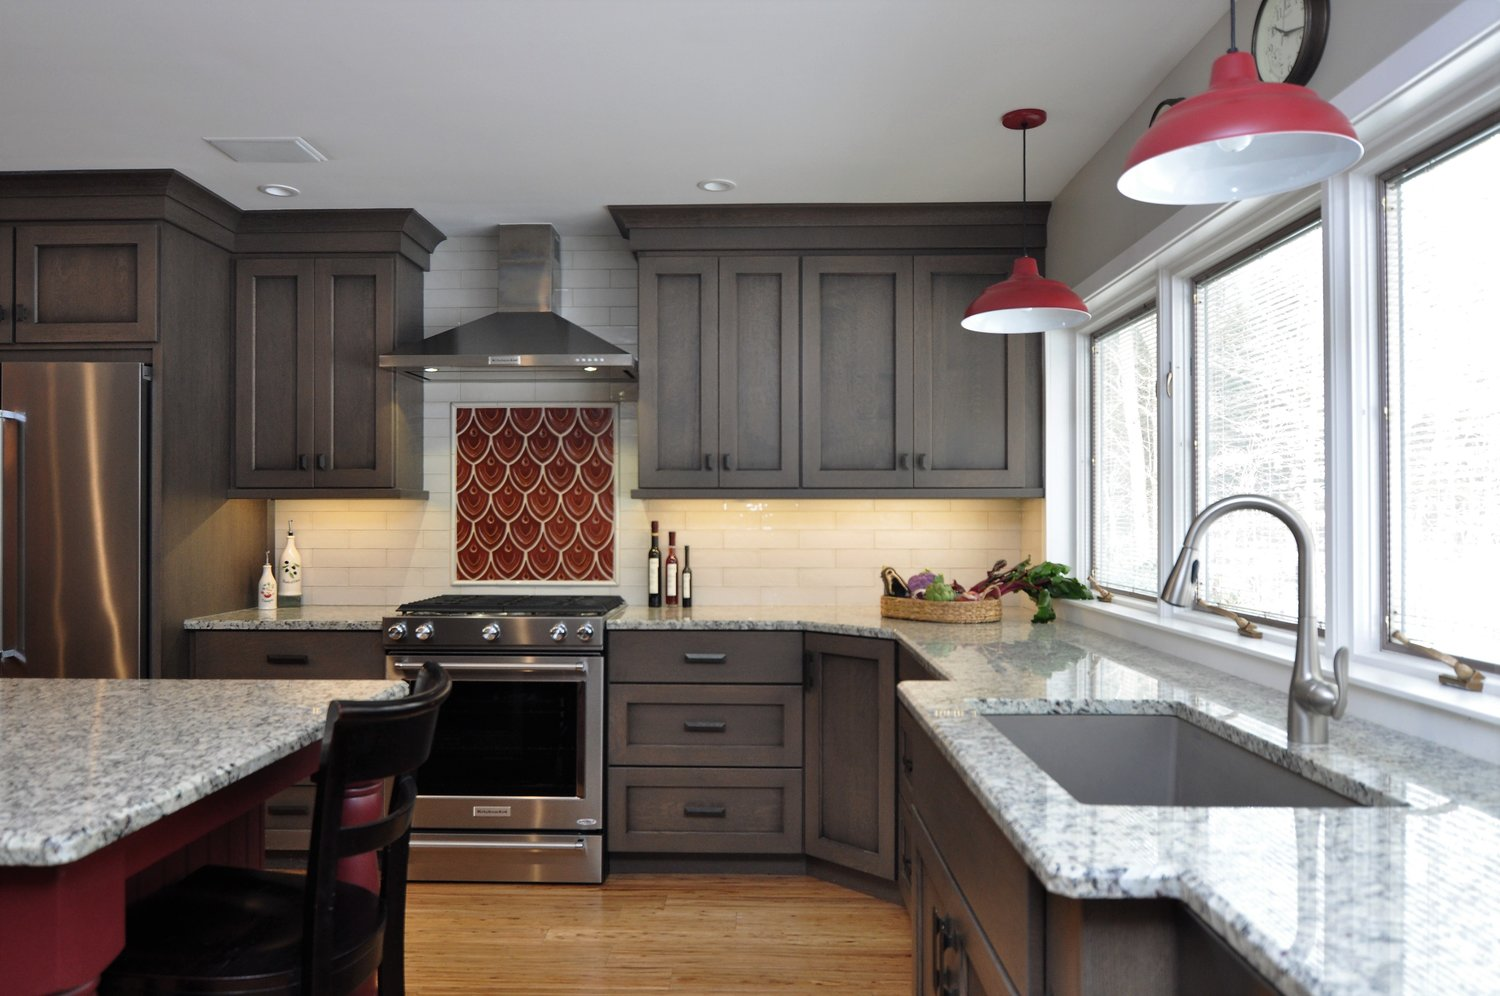 Designed by Erica Smith CMKBD, CAPS / Plato Woodwork (and Prelude) Cabinetry, Full Overlay Anthem Door Style, Quartersawn Oak with Coast Grey Stain with a Black Glaze (Island in Cottage Red Paint with Black Glaze) / Moon Light Granite Counter Tops